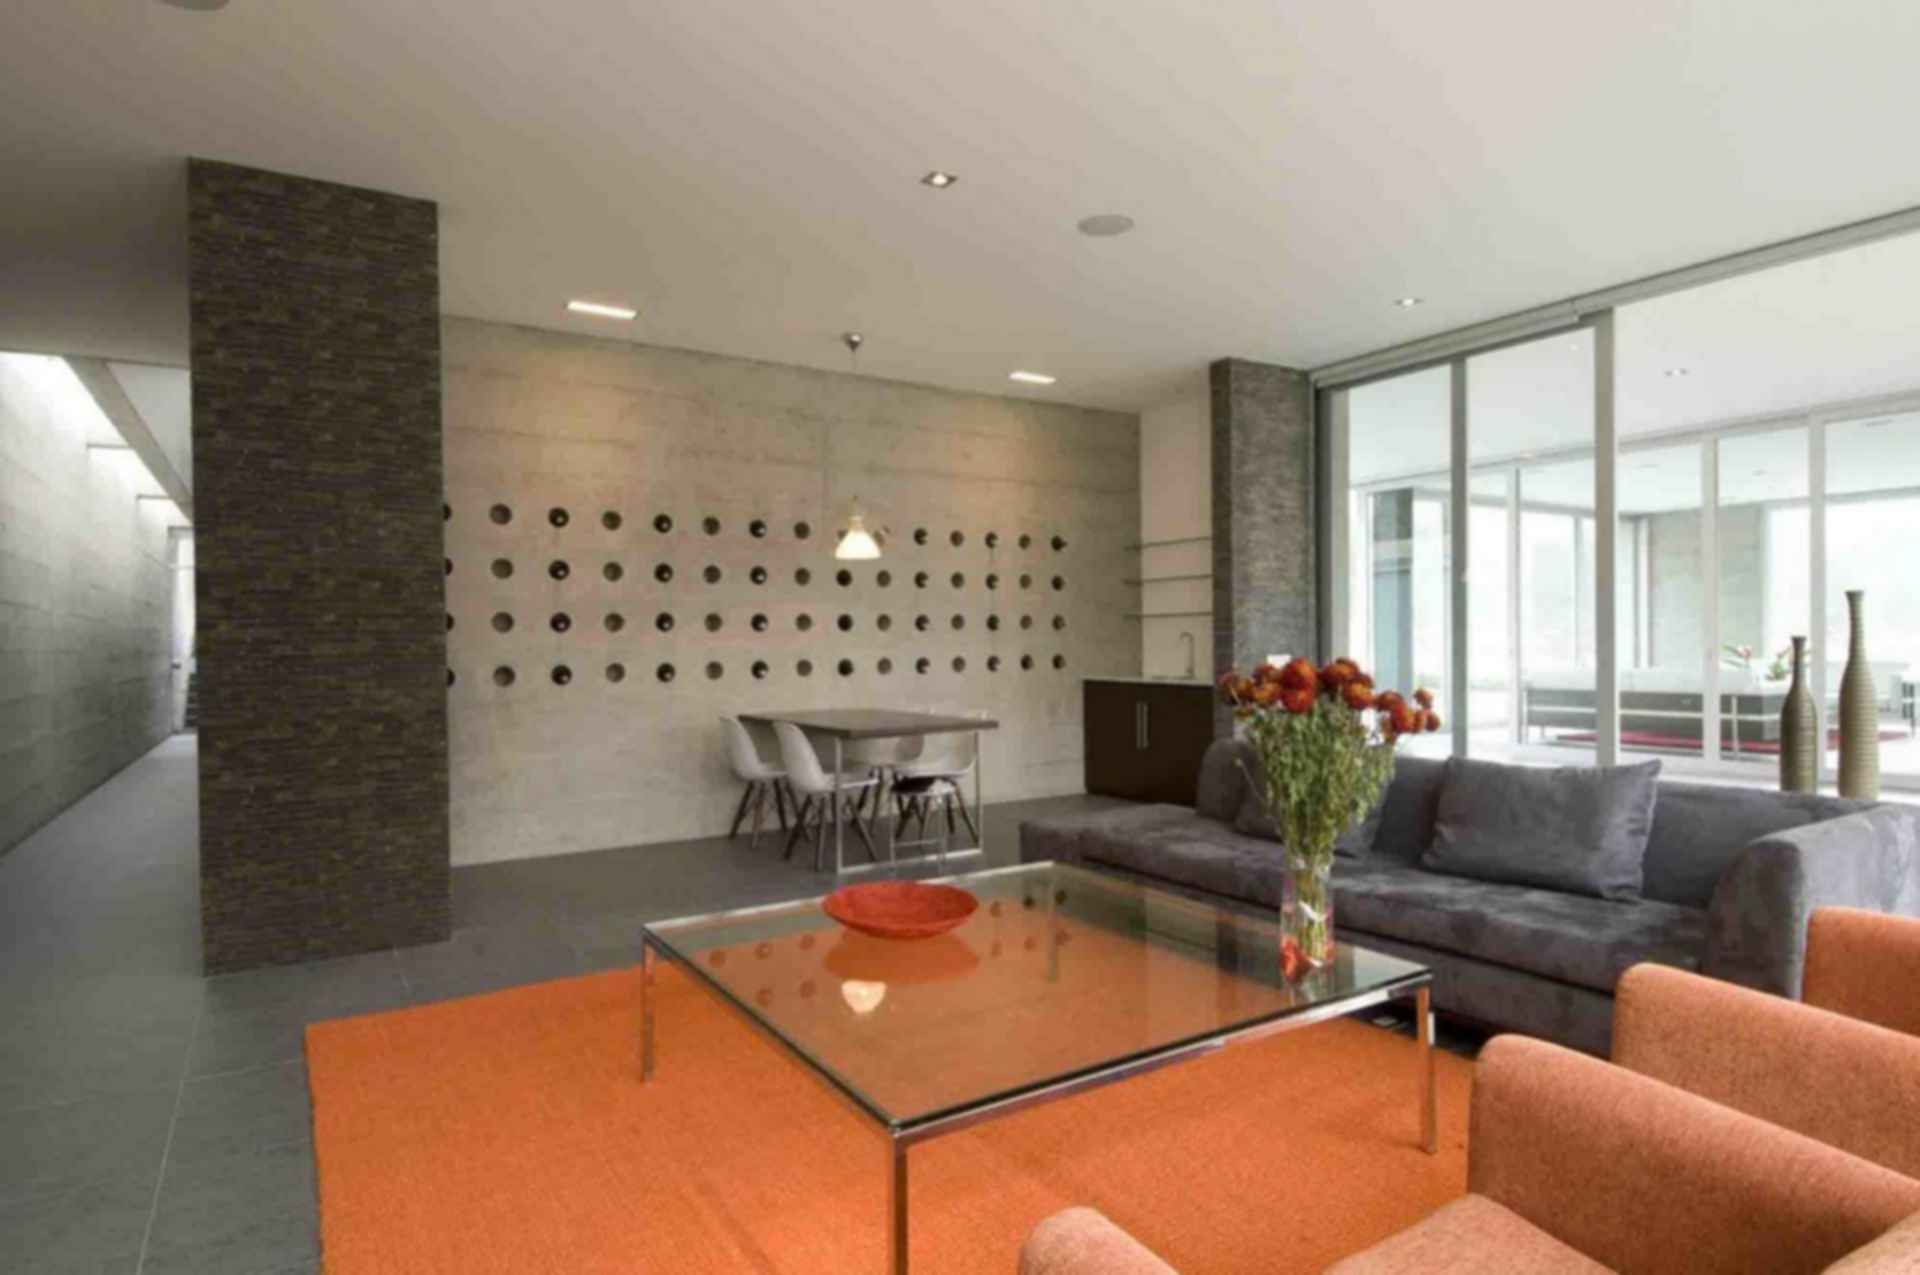 House on The Andes - interior/lounge